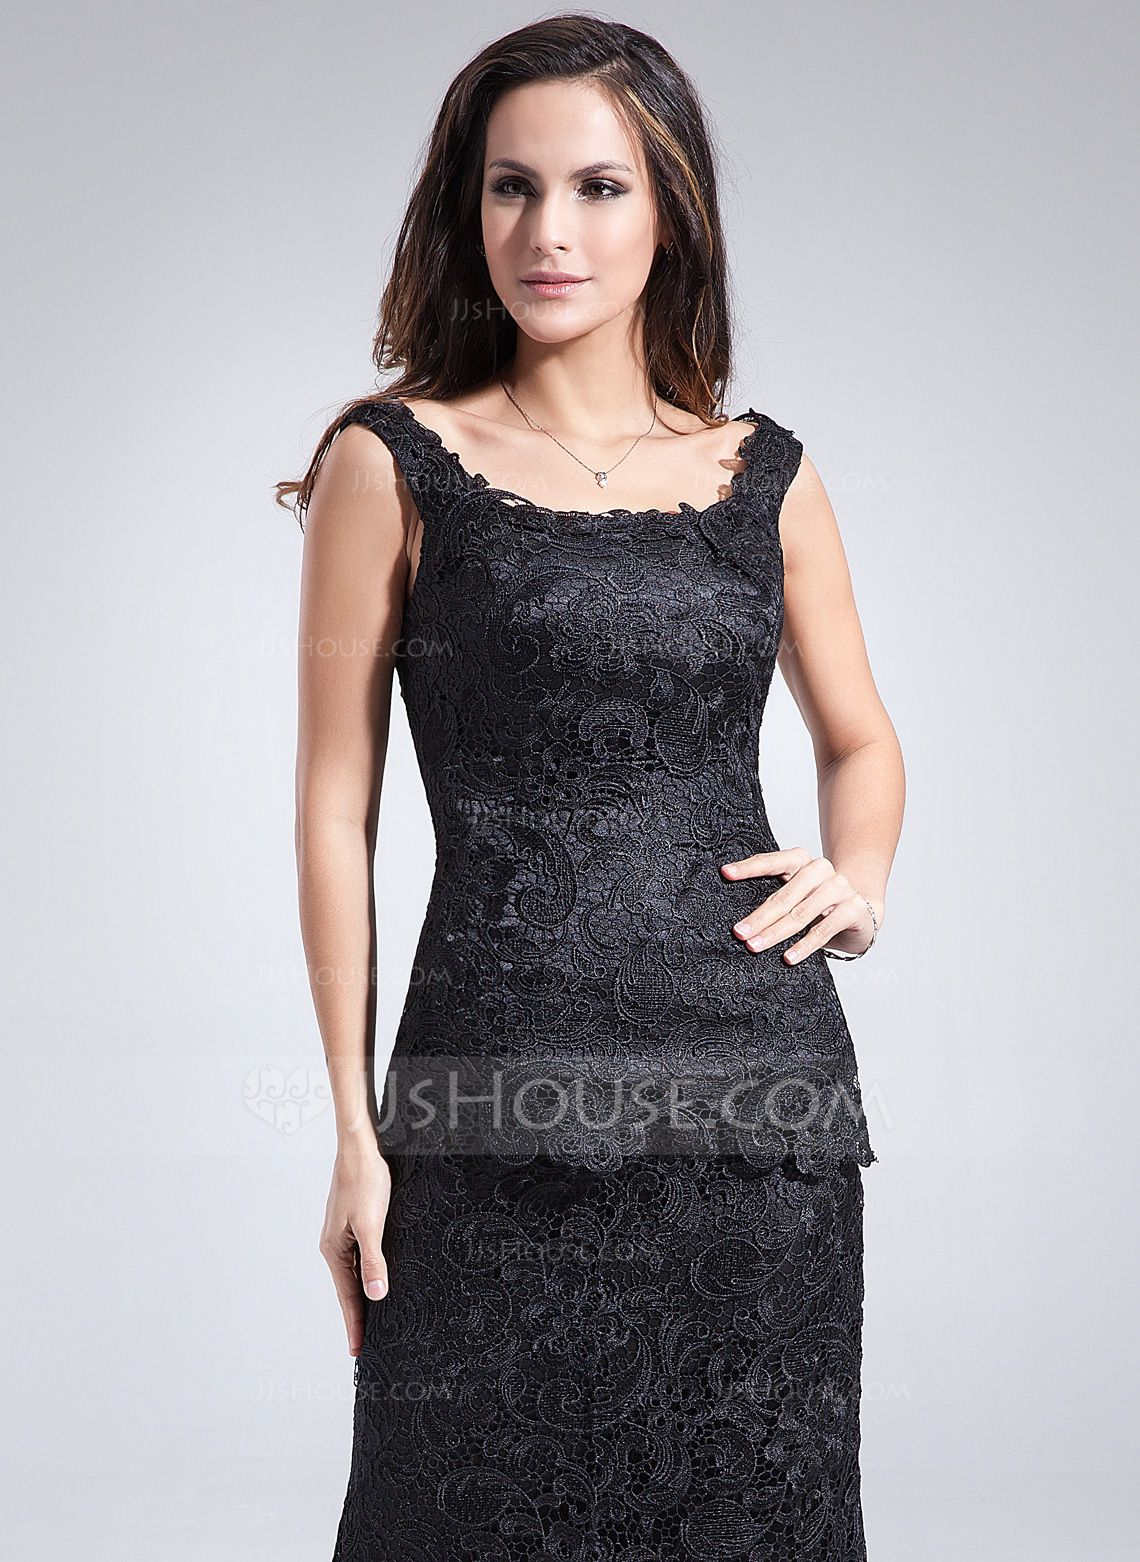 Black lace dress for summer wedding  SheathColumn Scoop Neck AnkleLength Lace Mother of the Bride Dress